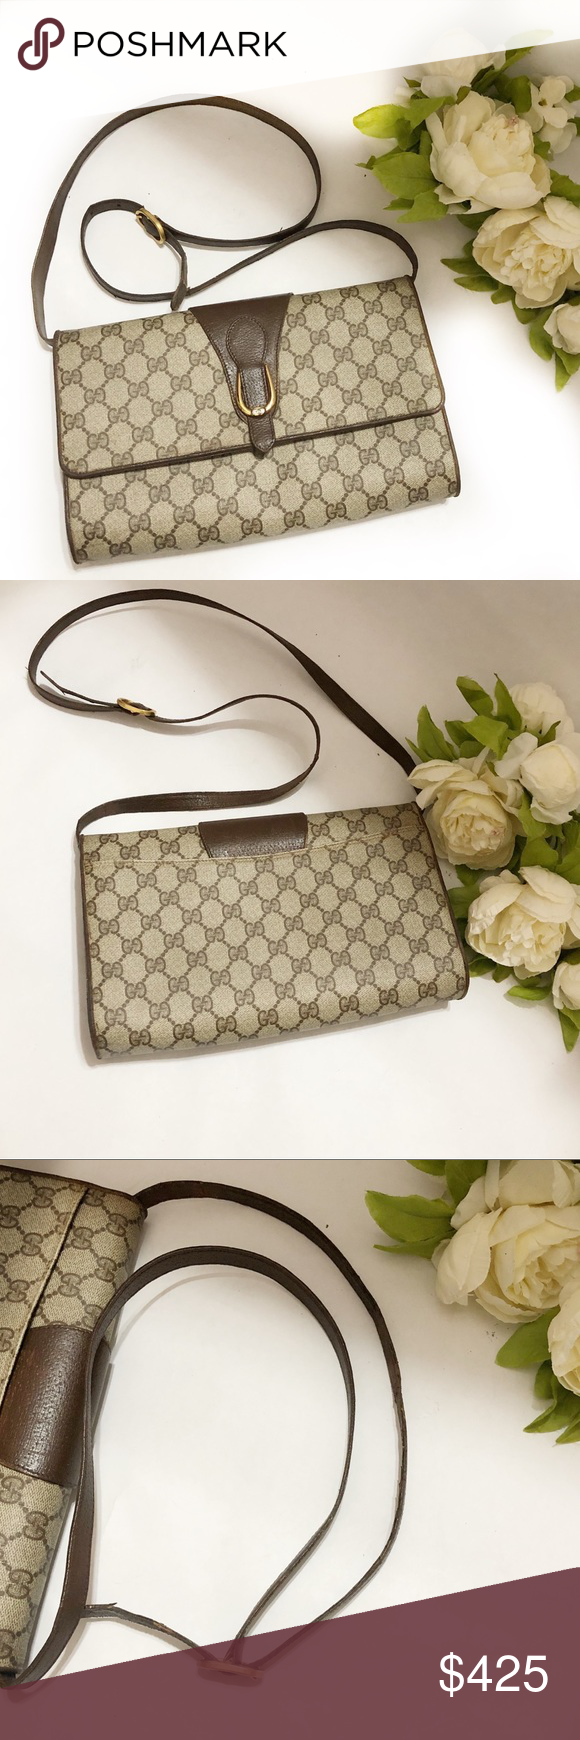 4b6a789295df Gucci pattern GG vintage crossbody bag Gucci vintage pattern GG Crossbody  bag. In excellent condition